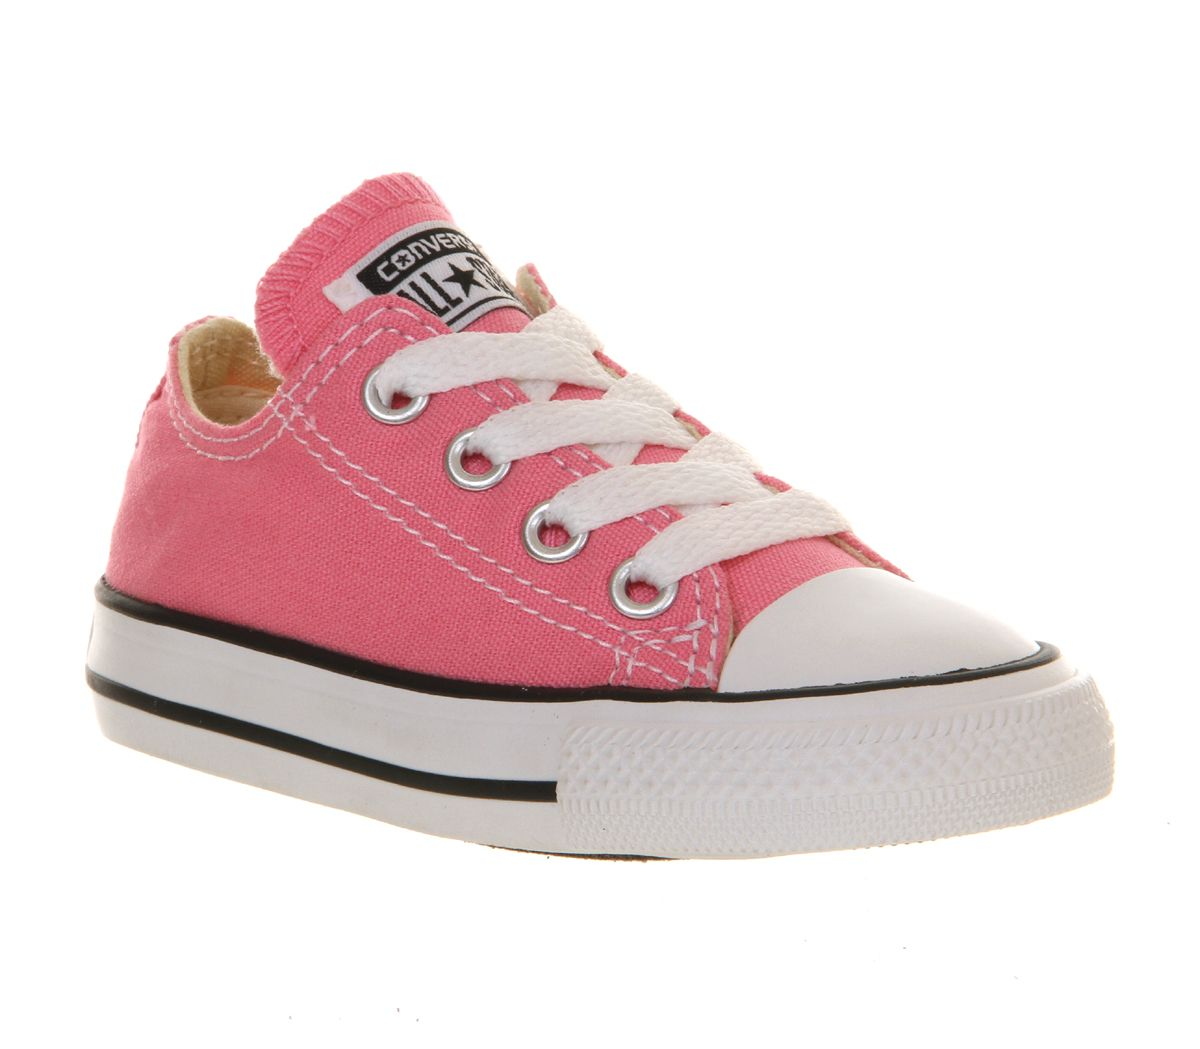 e170fdec367f Converse All Star Low Infant Shoes Pink - Unisex